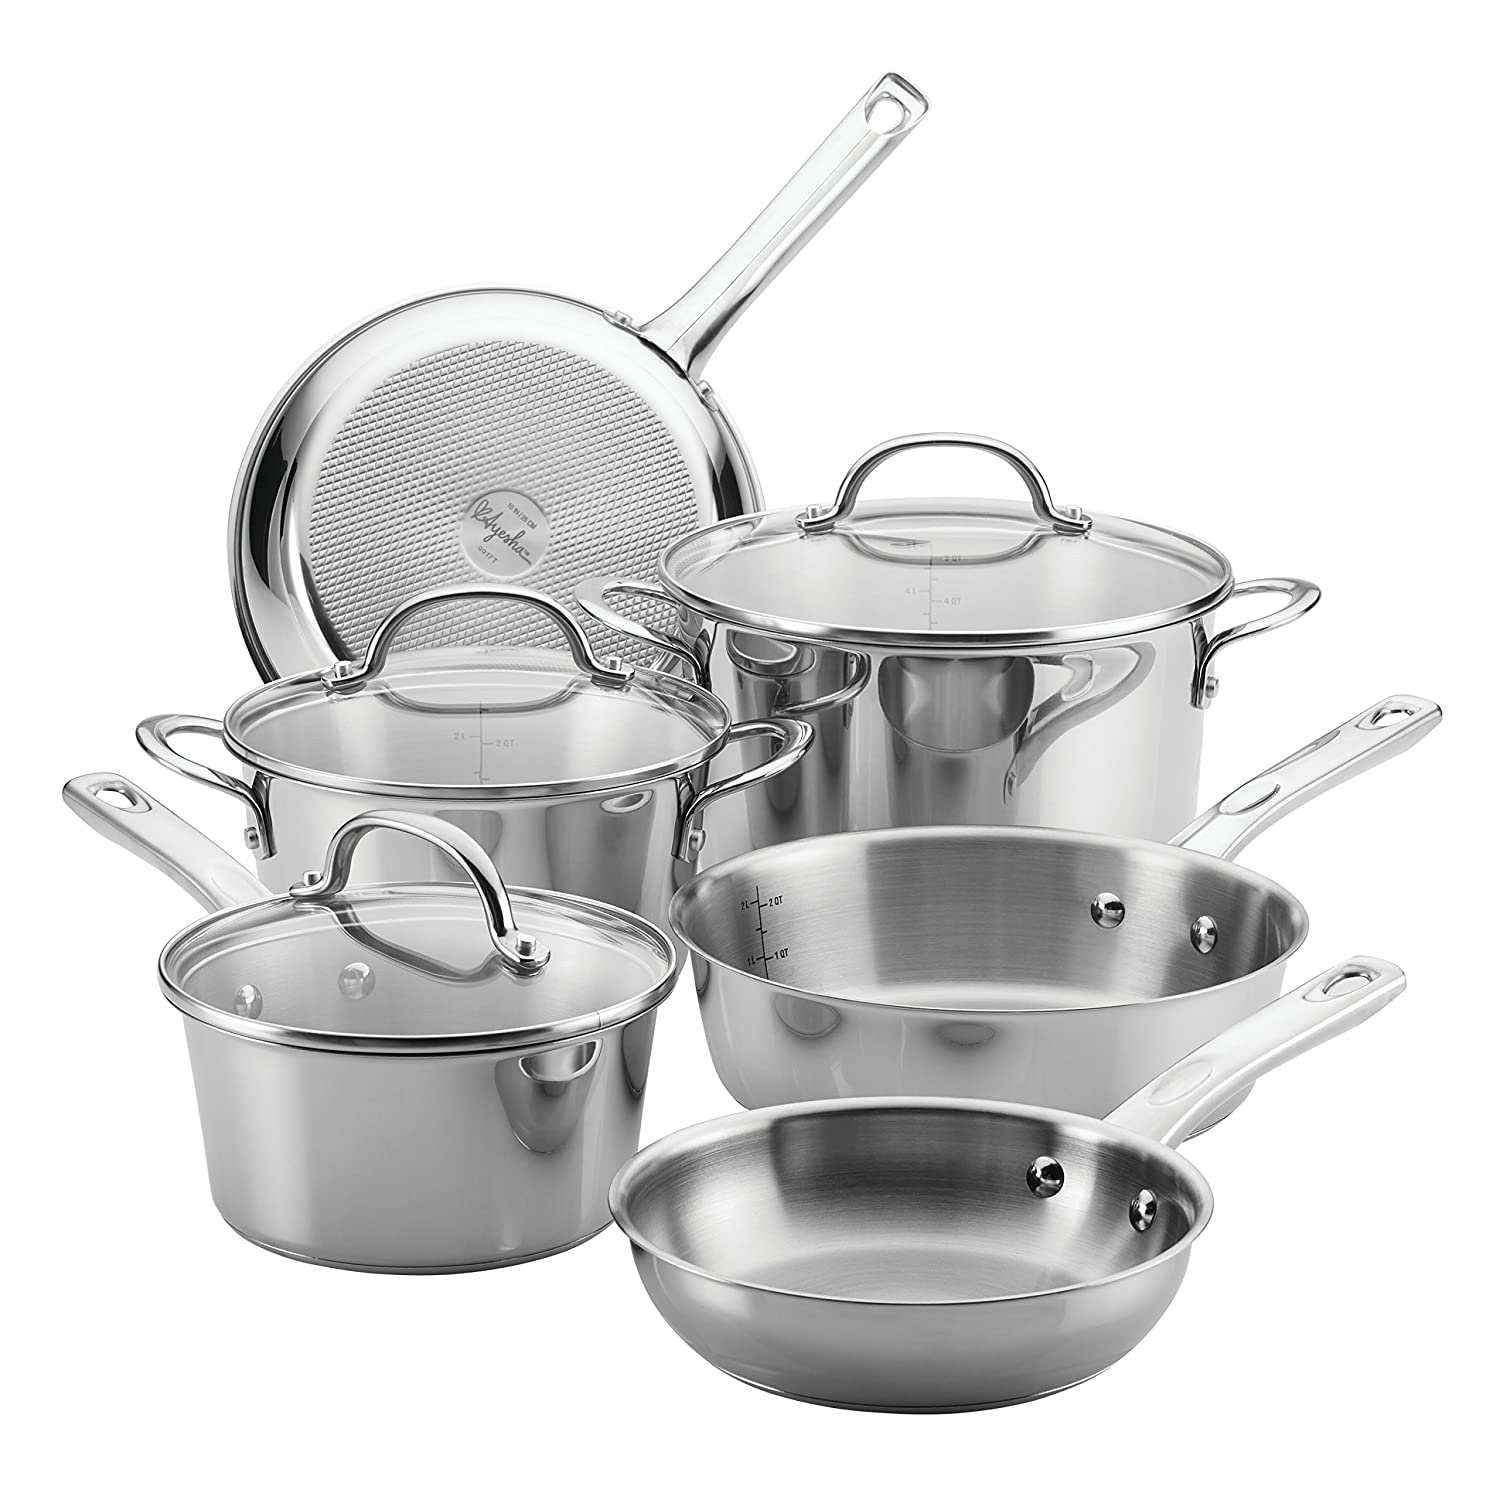 Amazon.com: Ayesha Curry Home Collection Stainless Steel Cookware ...